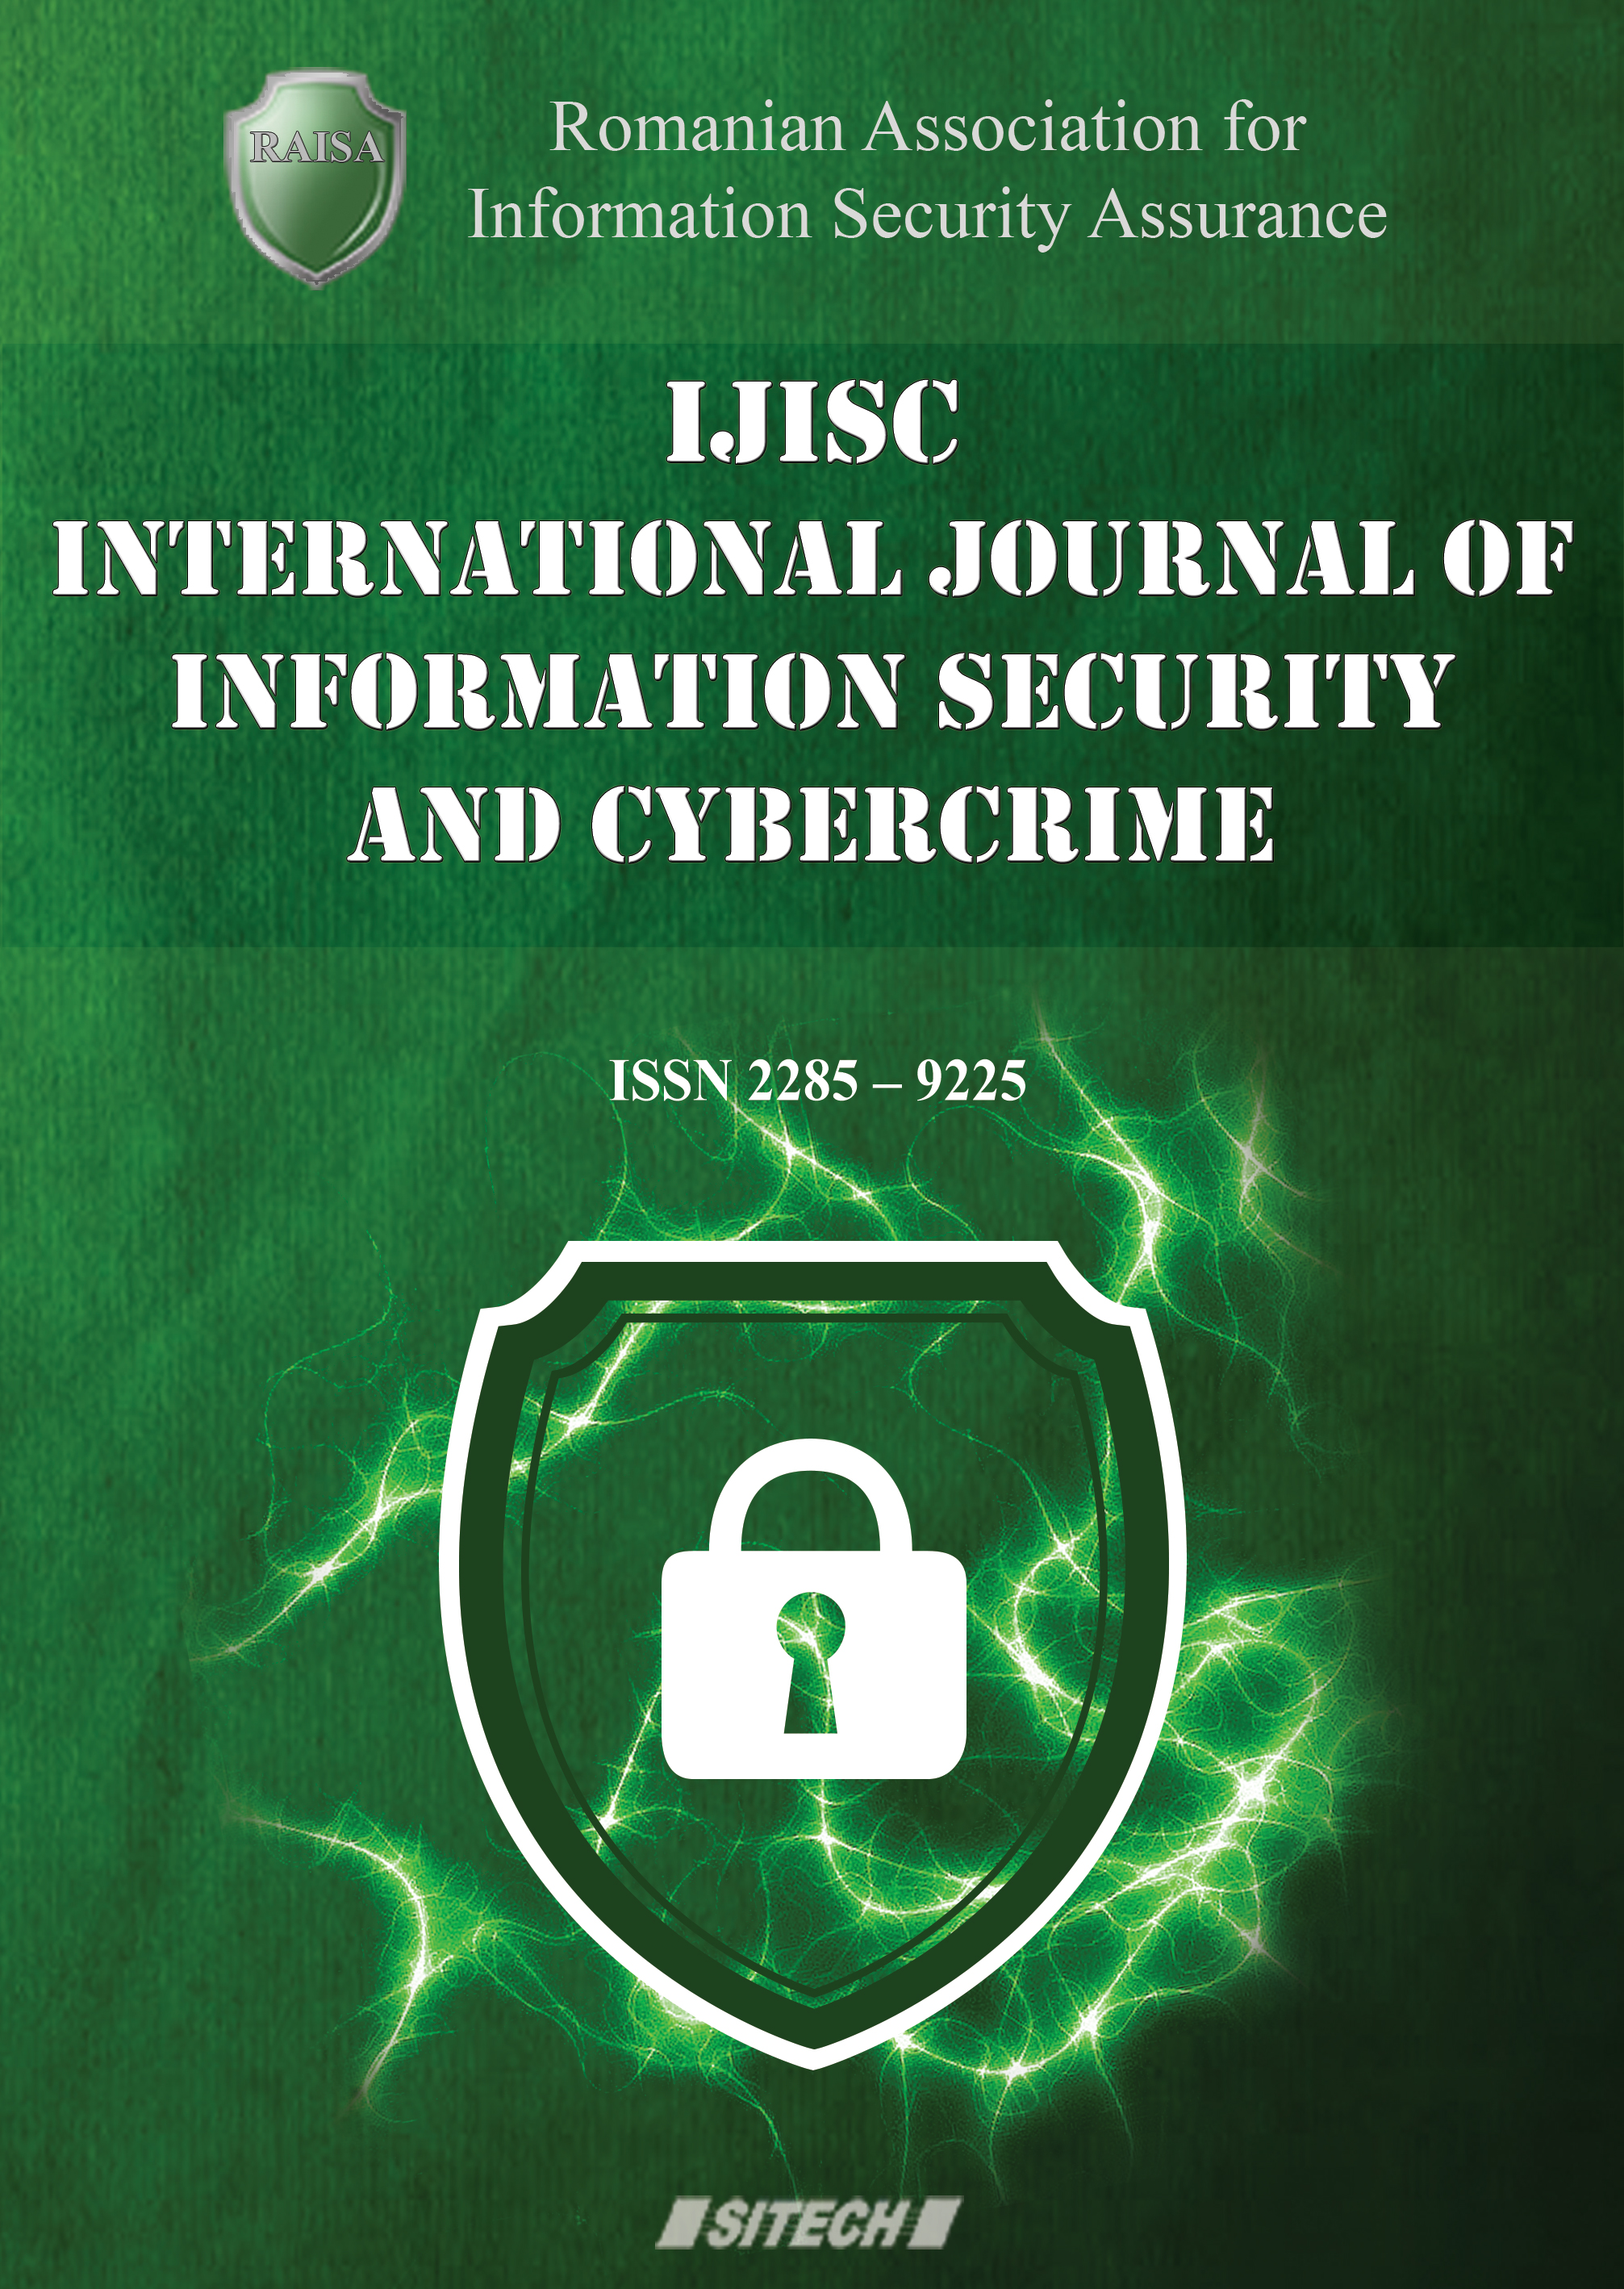 International Journal of Information Security and Cybercrime (IJISC) Cover Image